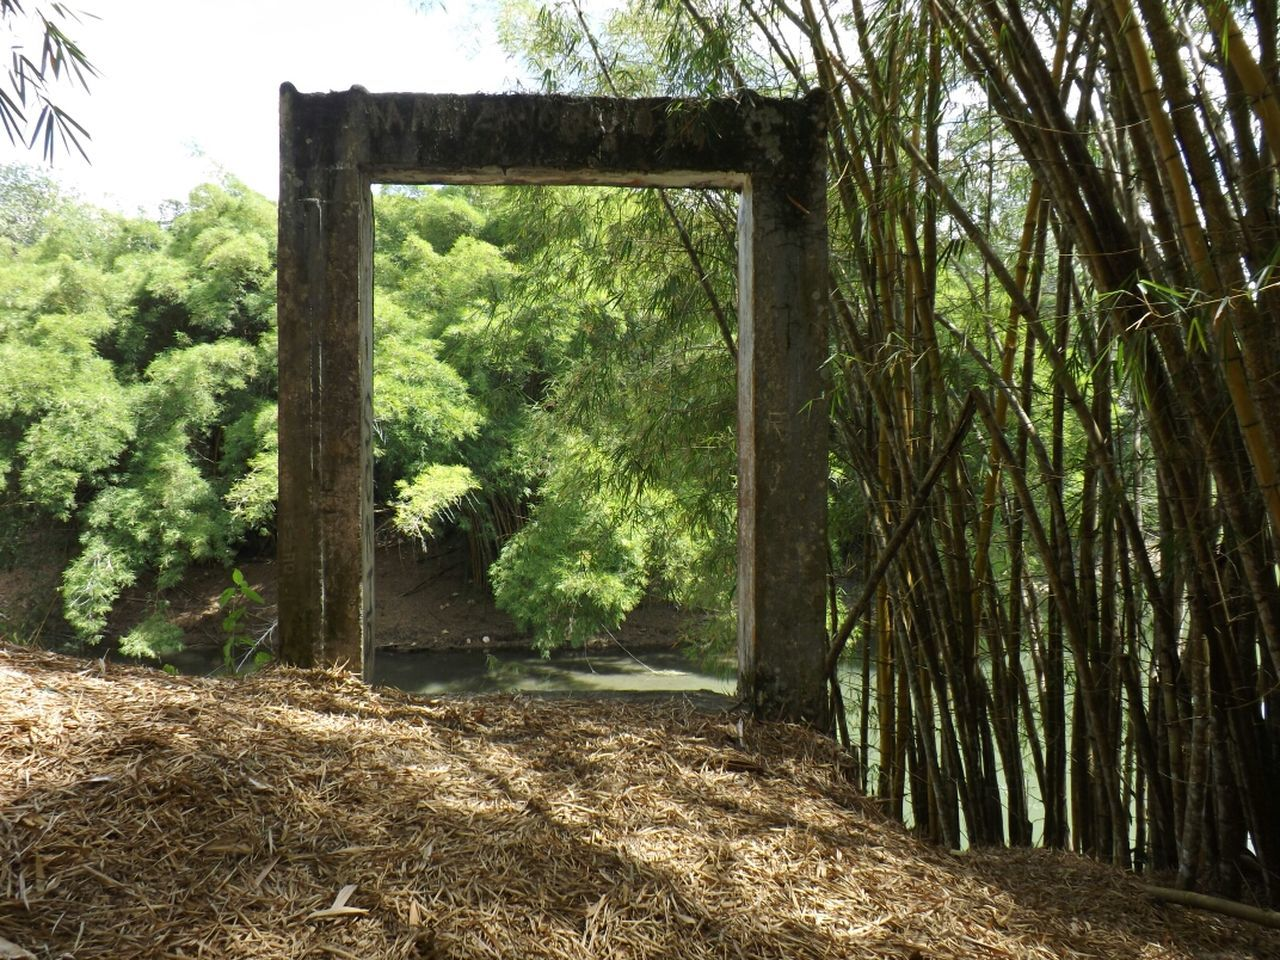 Concrete frame and bamboo trees by stream